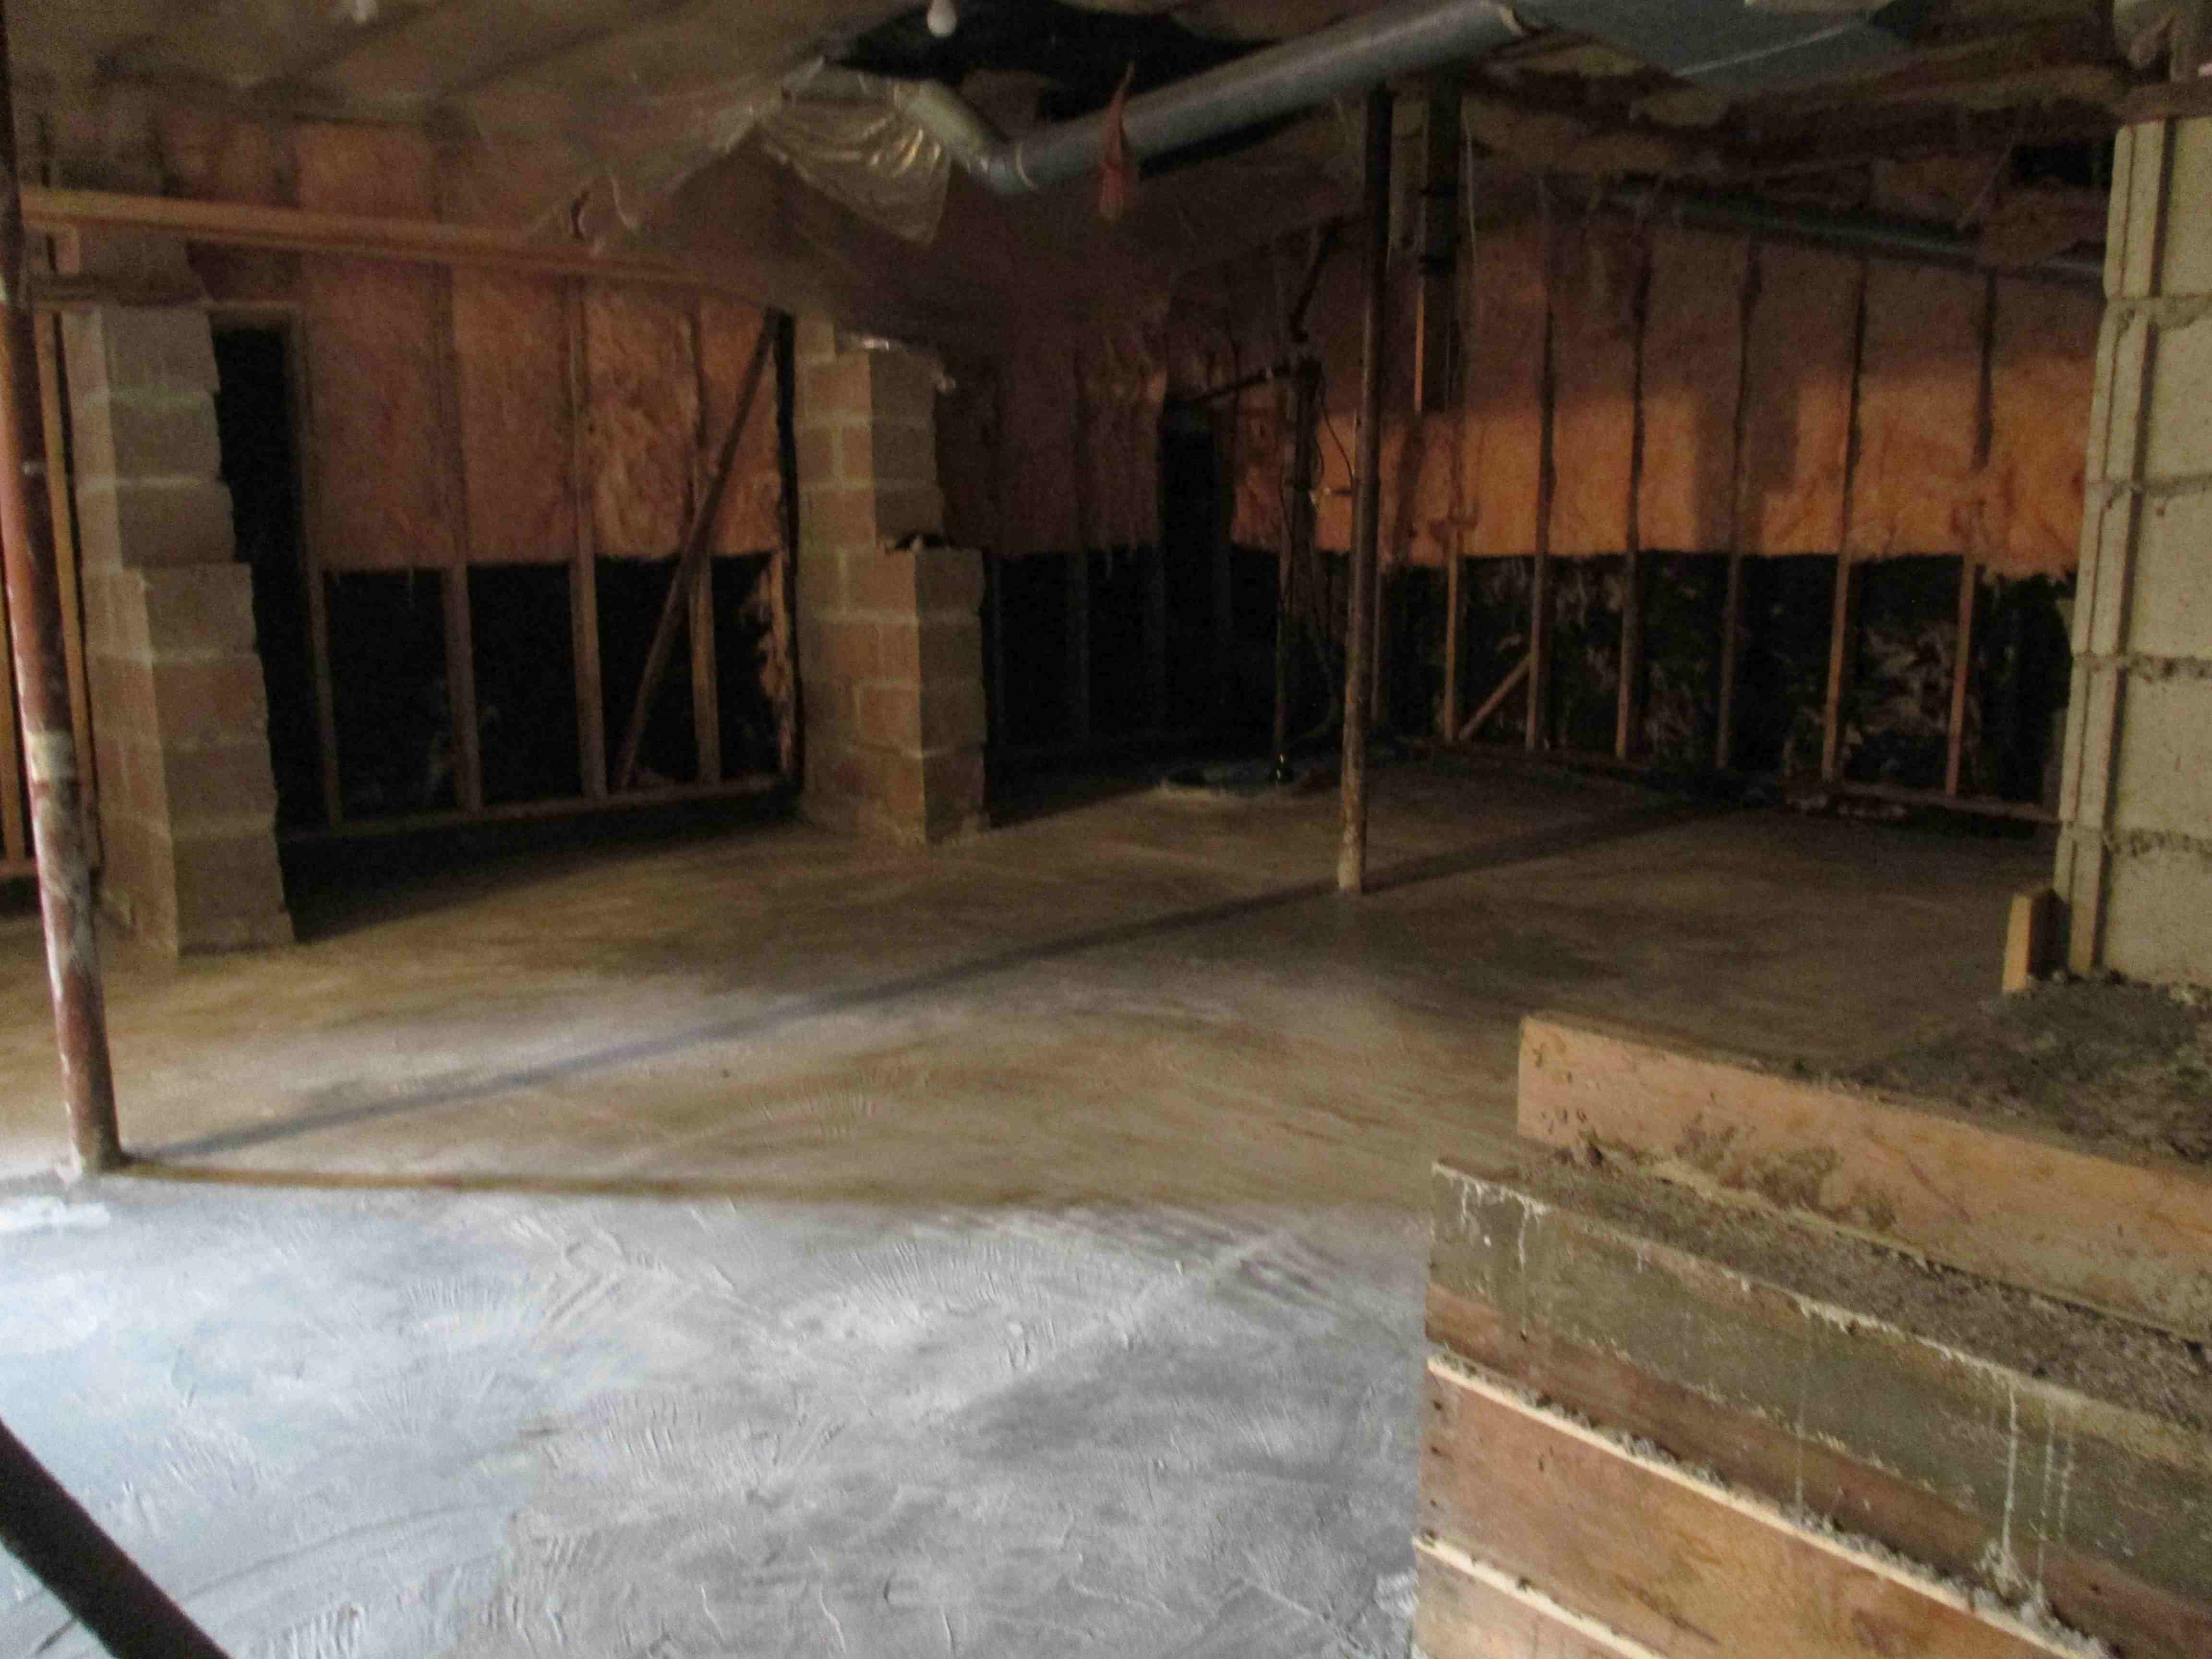 ../../user/image/completed-concrete-floor---2.jpg